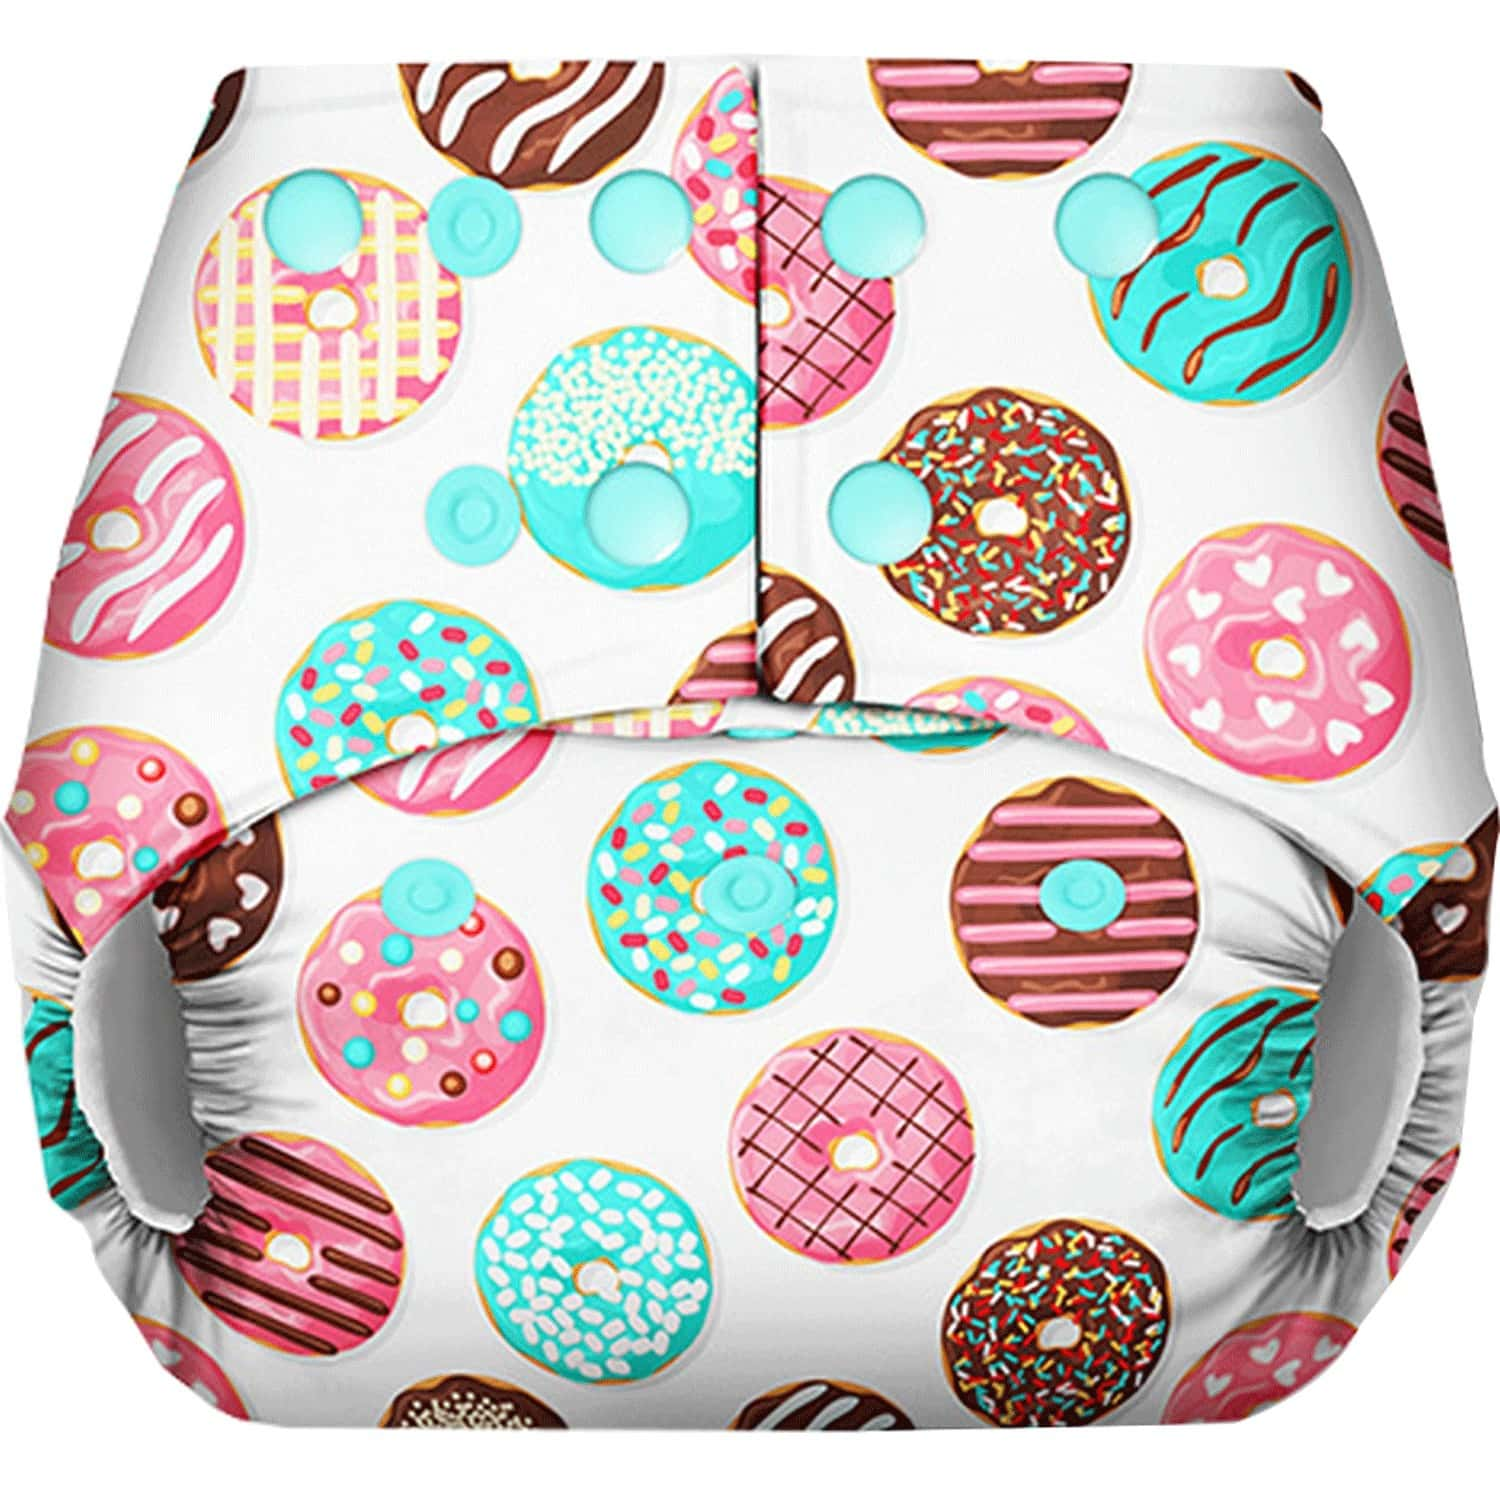 Basic - Freesize Reusable Pocket Cloth Diaper For Babies-with Dry Feel Insert - Donut